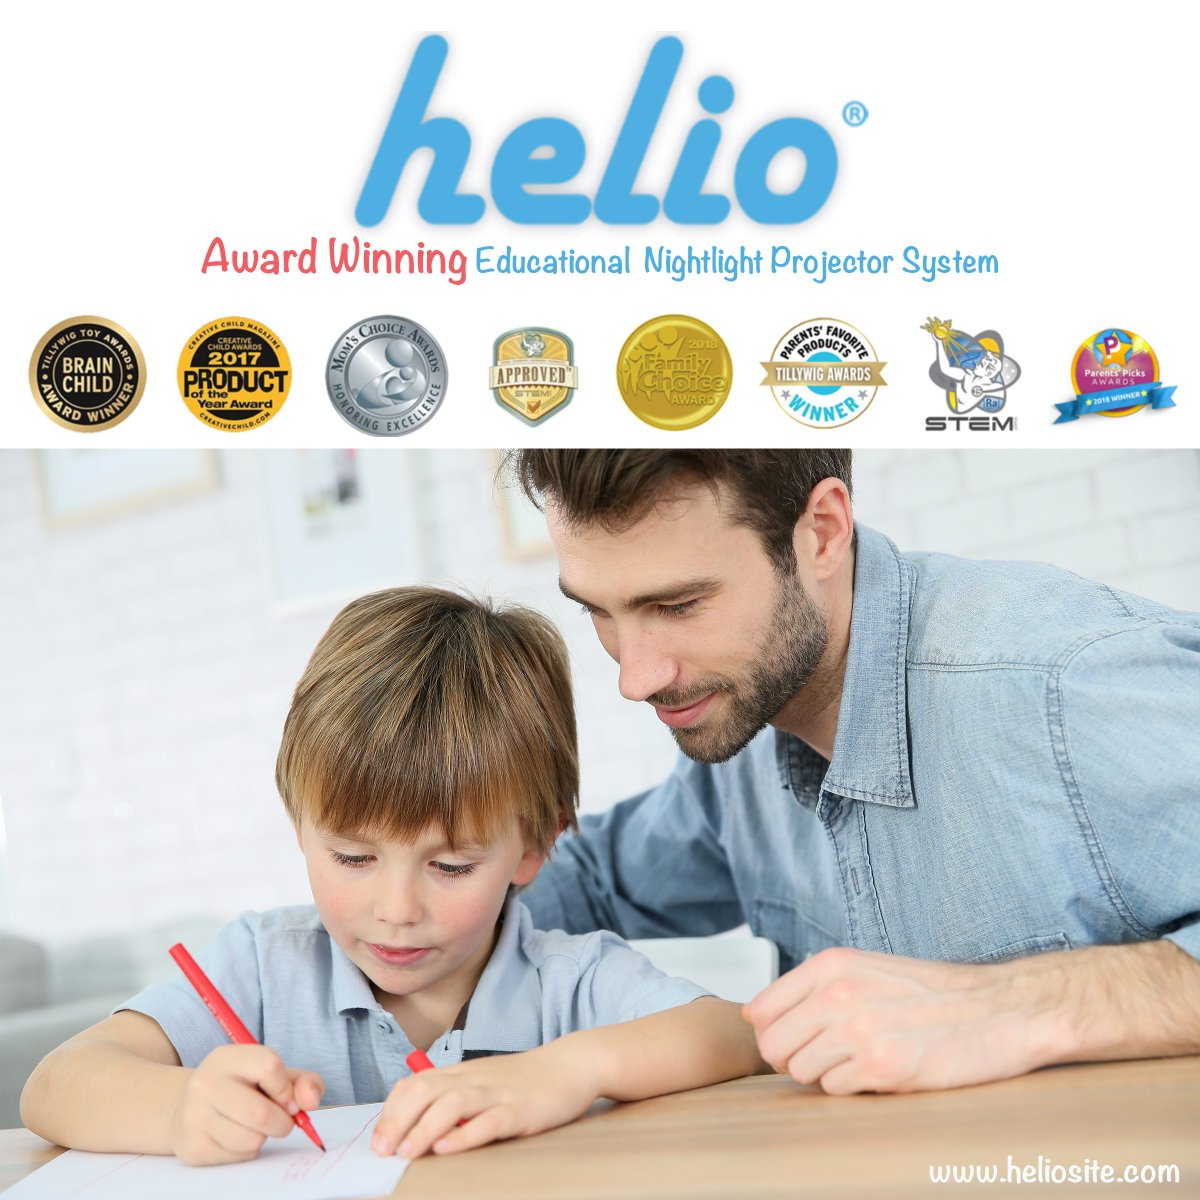 Did You Know that HELIO has Won Numerous Awards? Helio is a certified STEM product and proven to help children learn easily. #stem #stemforkids #ScienceForKids #STEMeducation #stemactivities #montessori #teachersfollowteachers #teachingideas #ihomeschool #amazonfinds